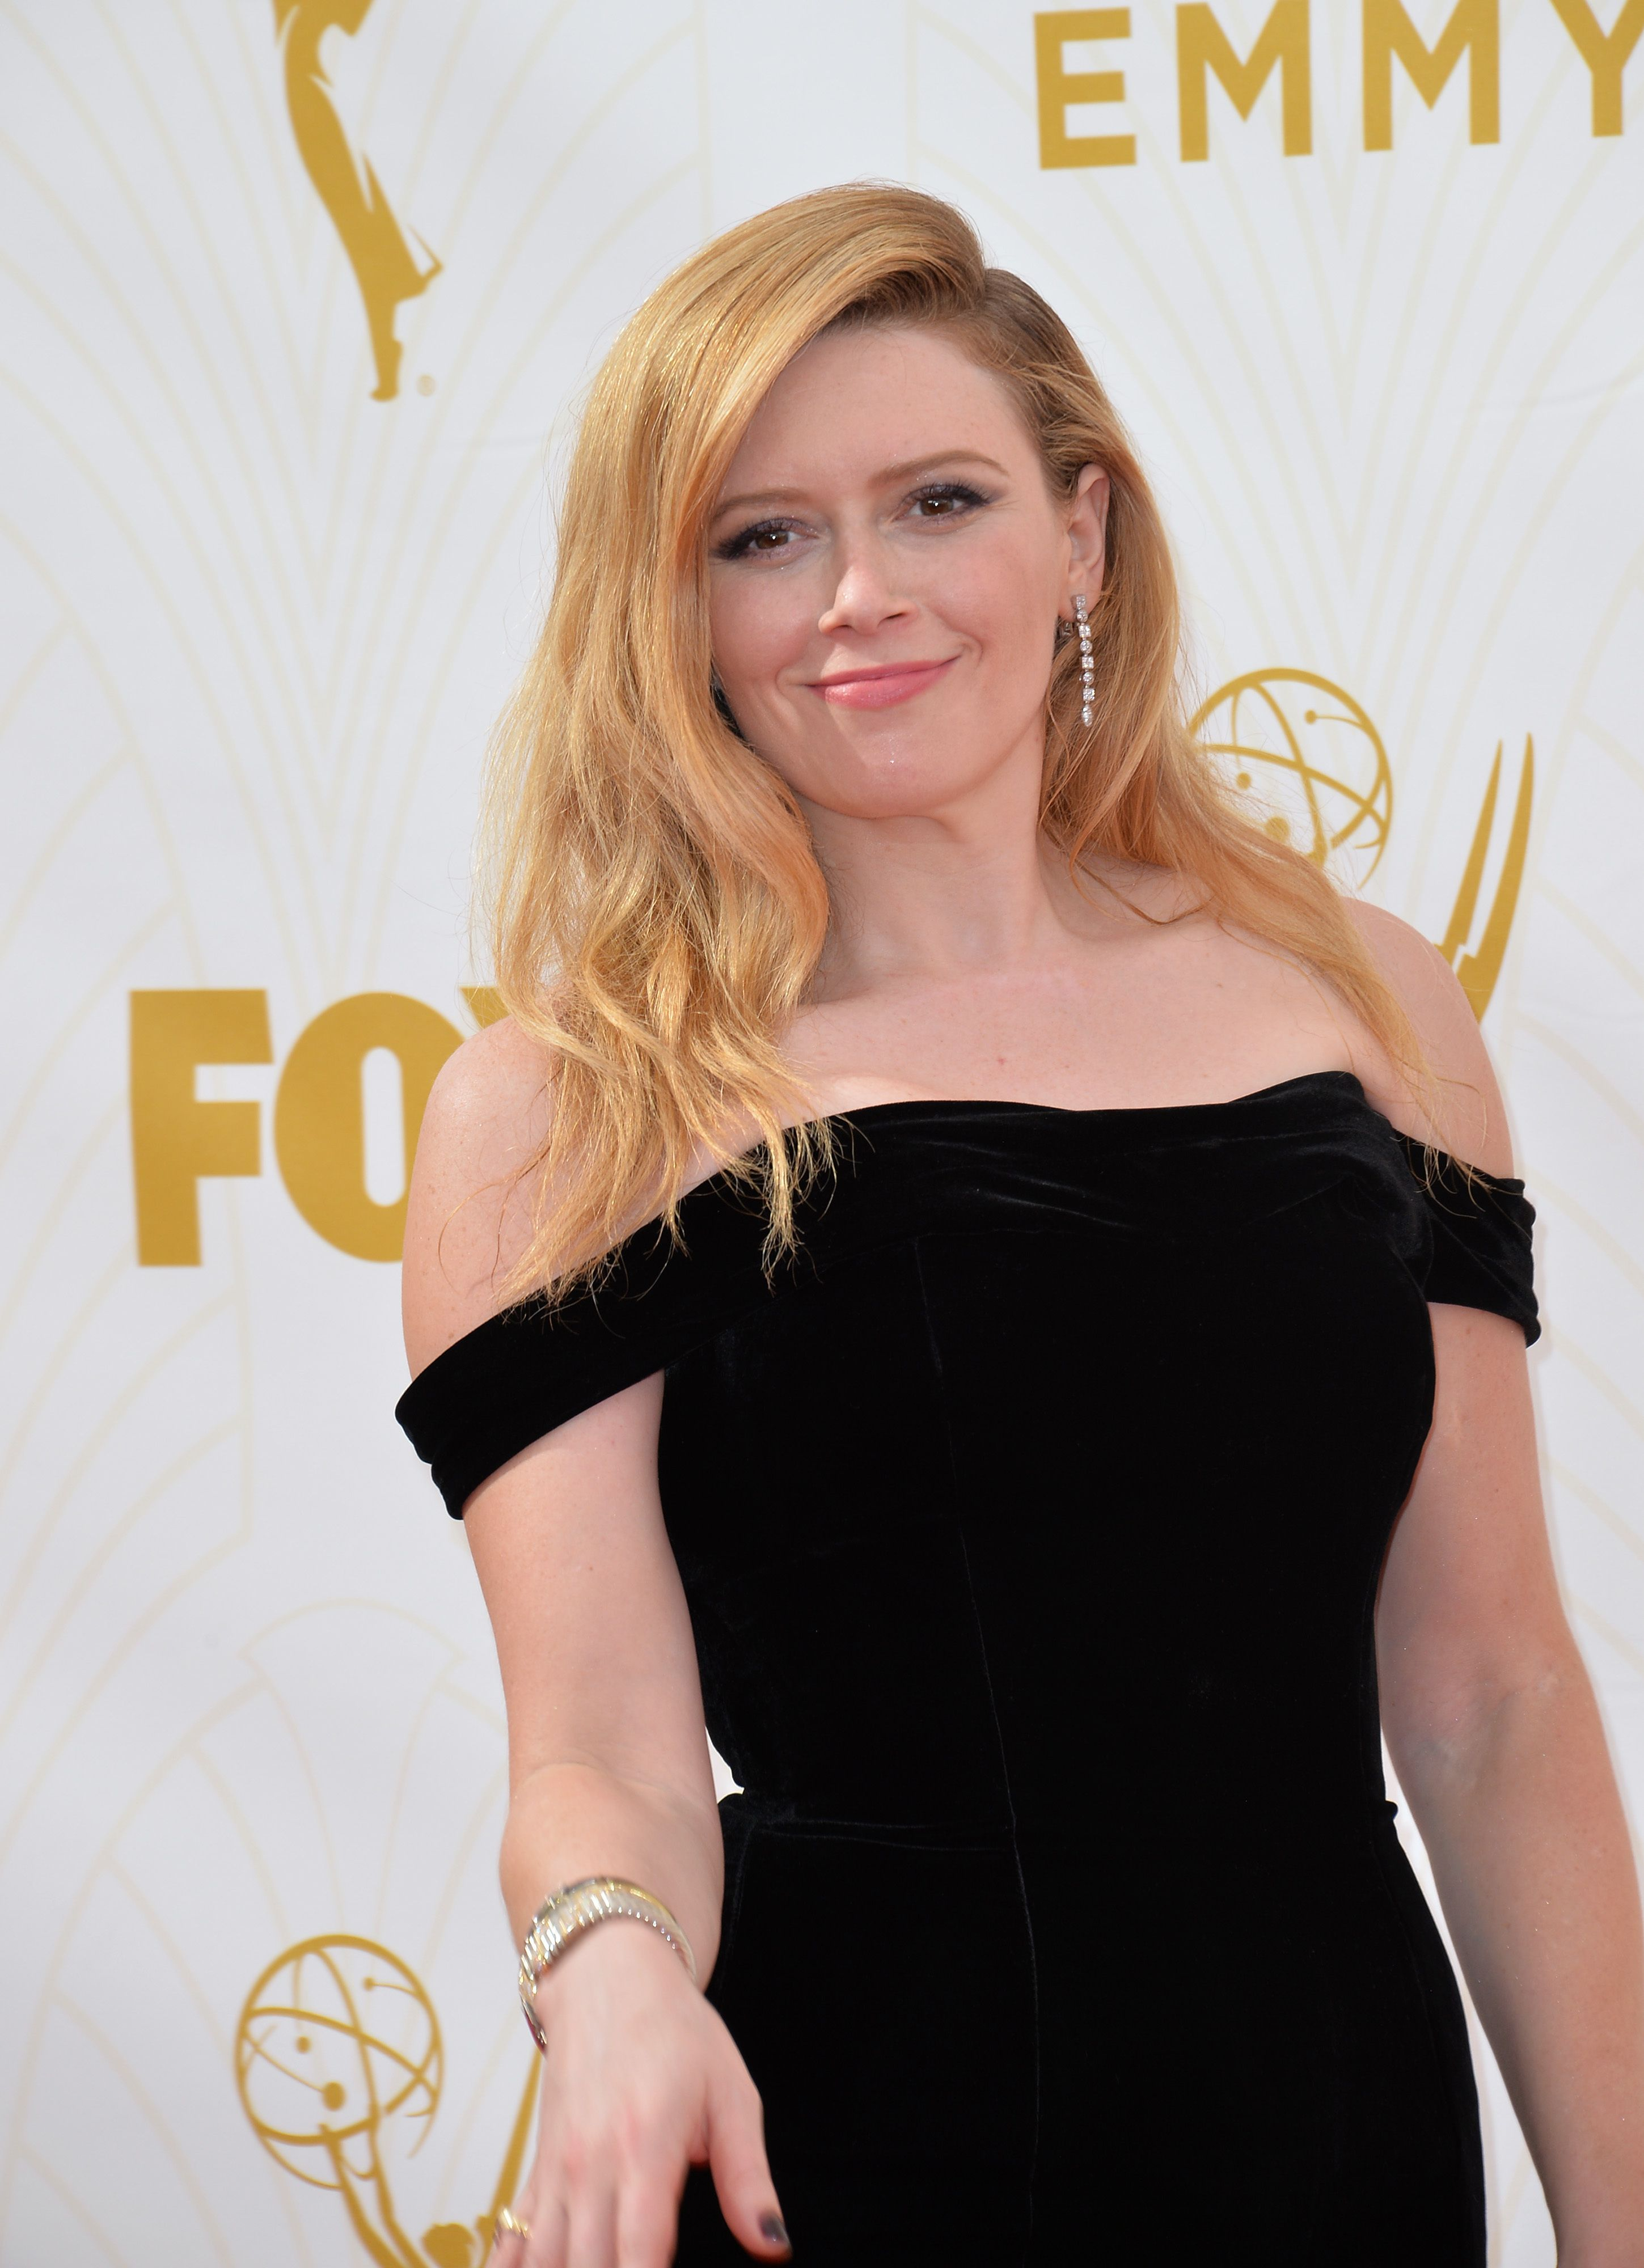 Actress Natasha Lyonne attending the 67th Primetime Emmy Awards in 2015. | Image: Shutterstock